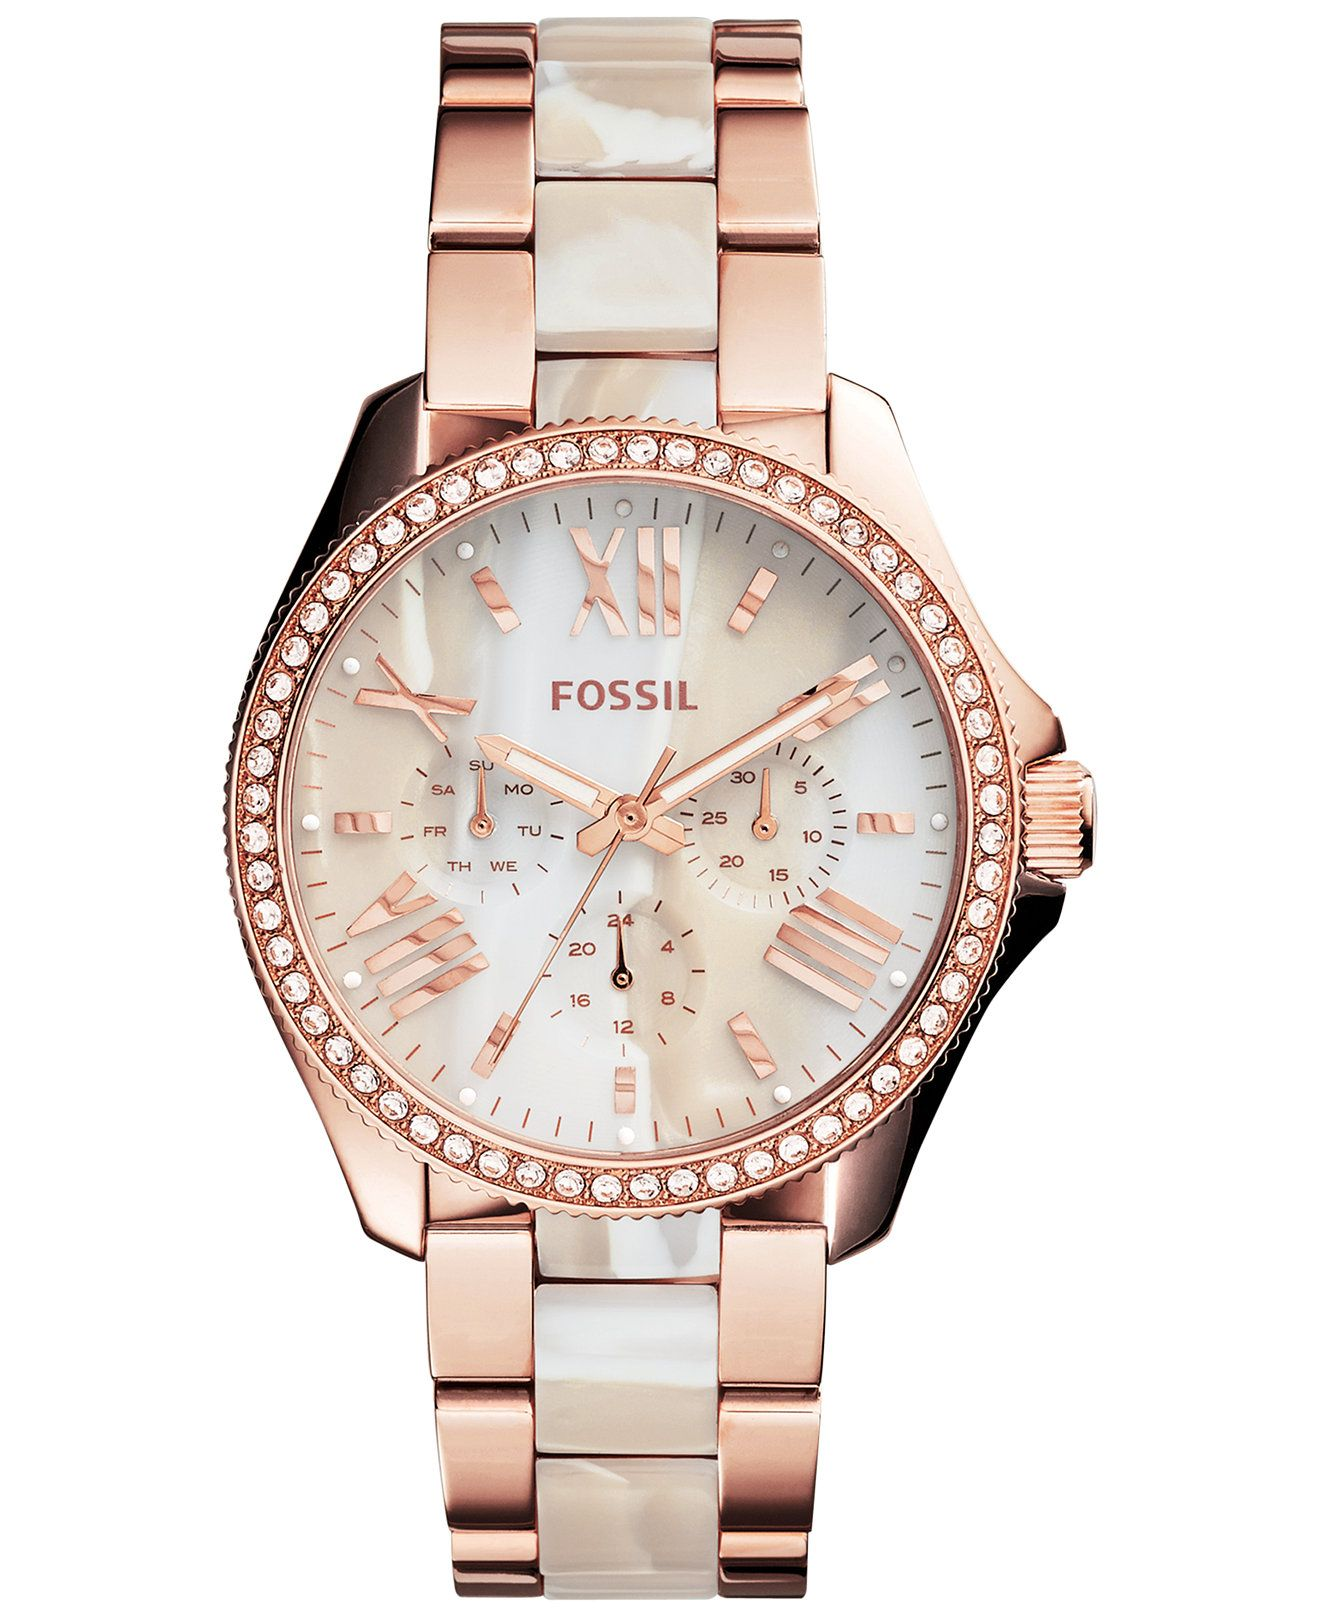 f093ab11aa9 Fossil Women s Chronograph Cecile Shimmer Horn and Rose Gold-Tone Stainless  Steel Bracelet Watch 40mm AM4616 - Watches - Jewelry   Watches - Macy s